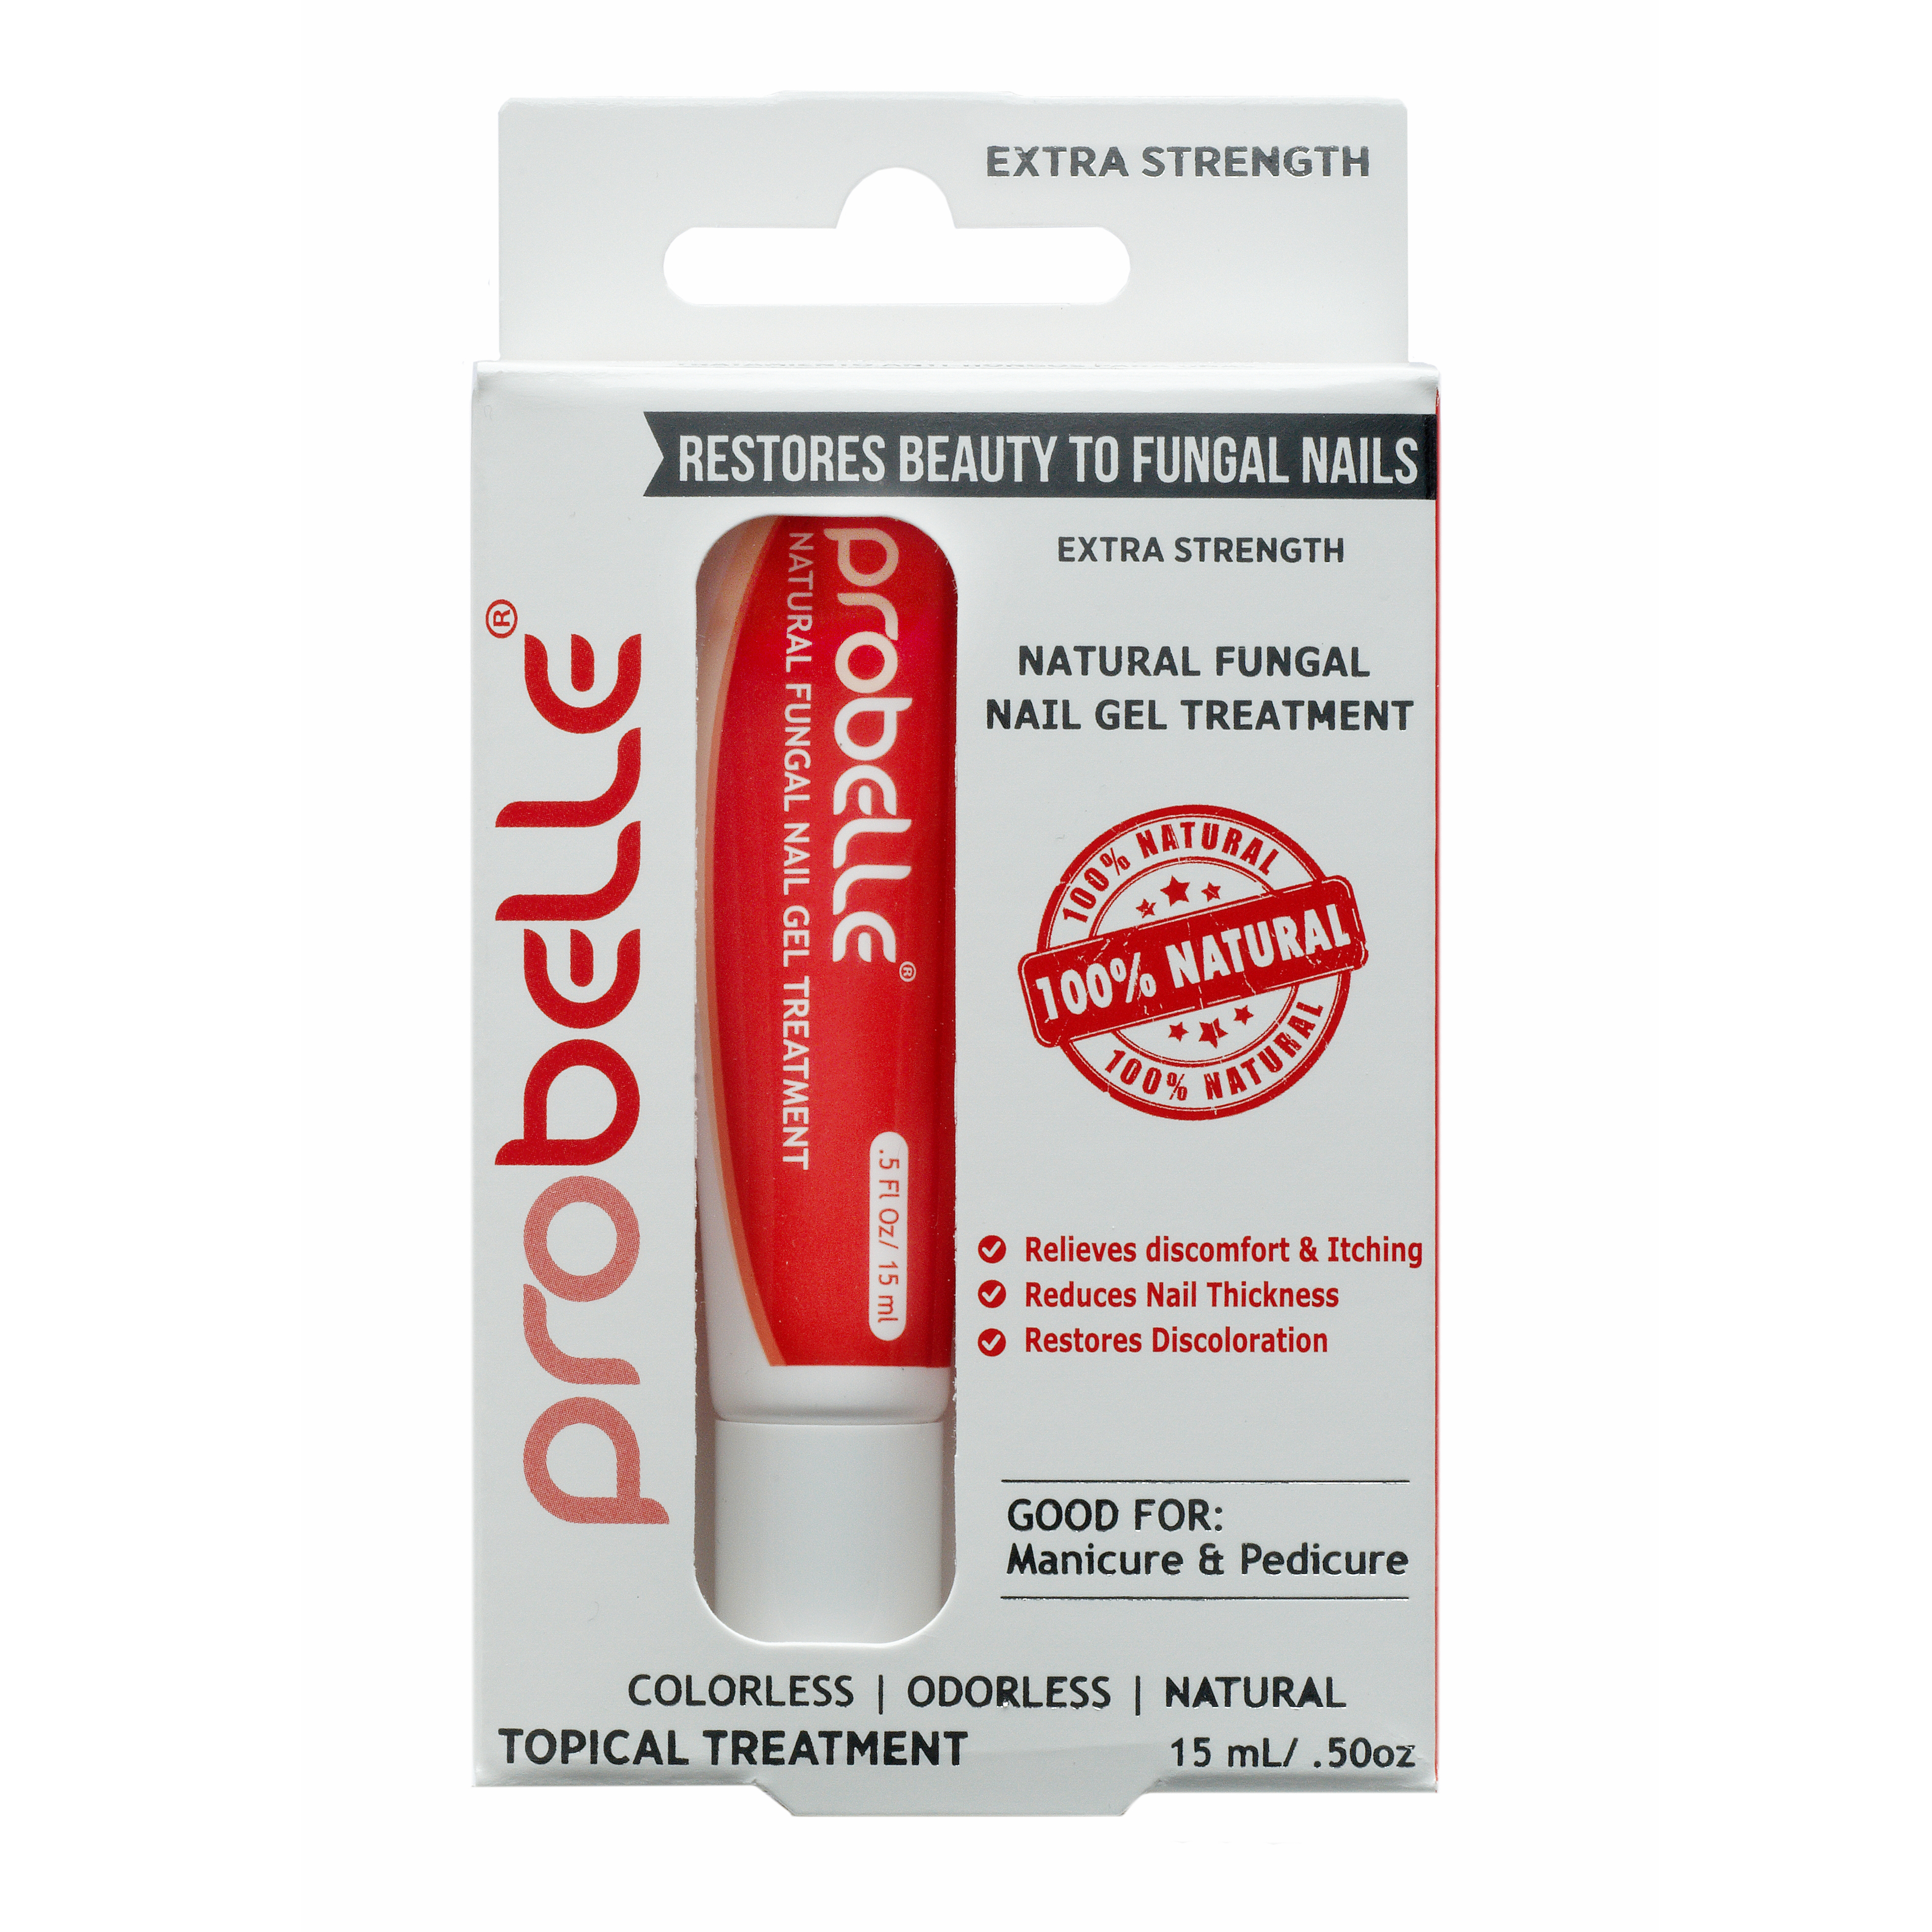 Natural Fungal Nail Gel Treatment - Extra Strength by Probelle